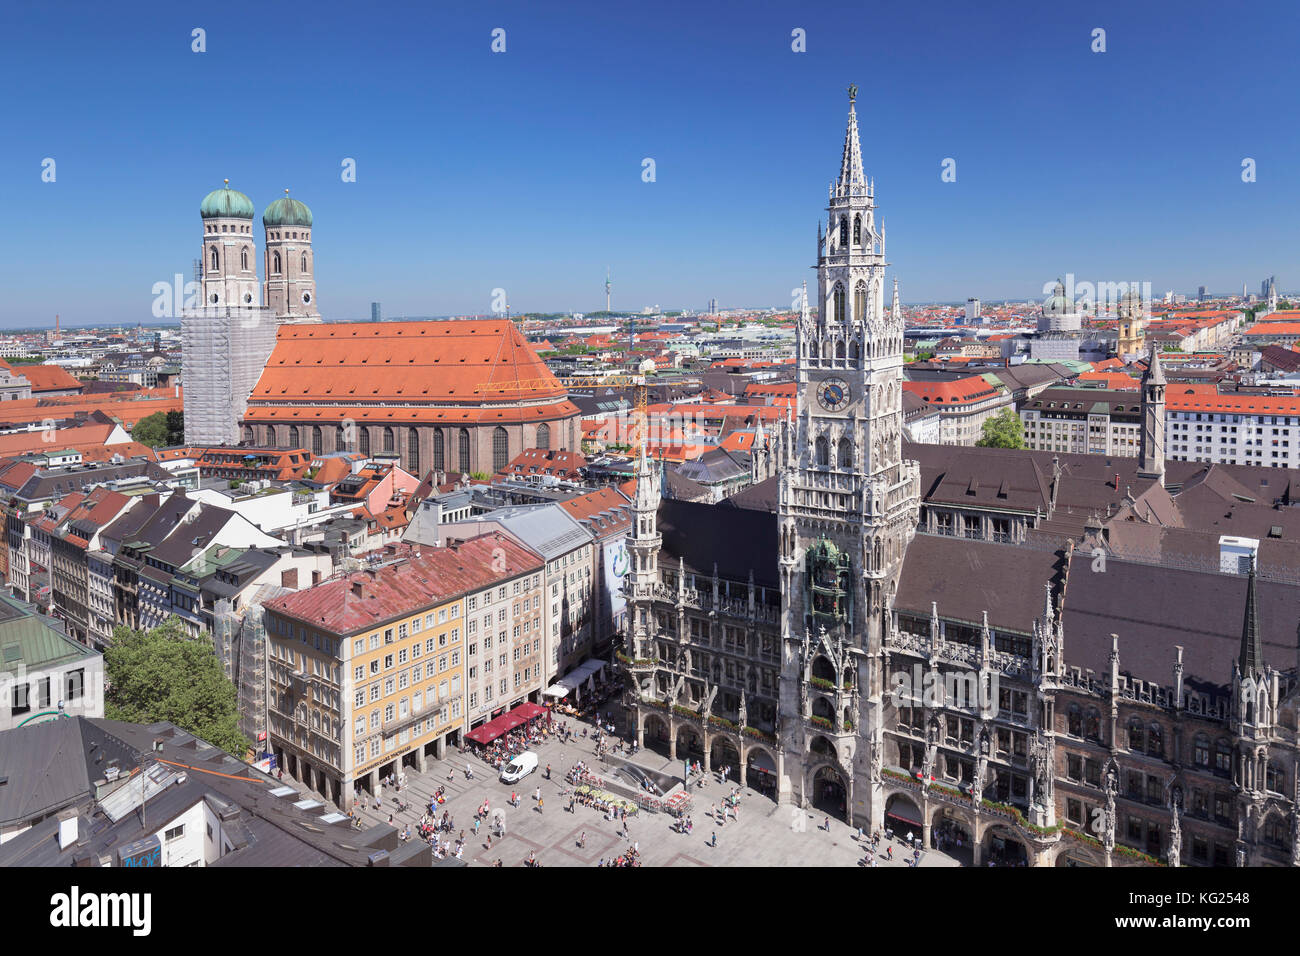 Marienplatz Square with town hall (Neues Rathaus) and Frauenkirche church, Munich, Bavaria, Germany, Europe - Stock Image